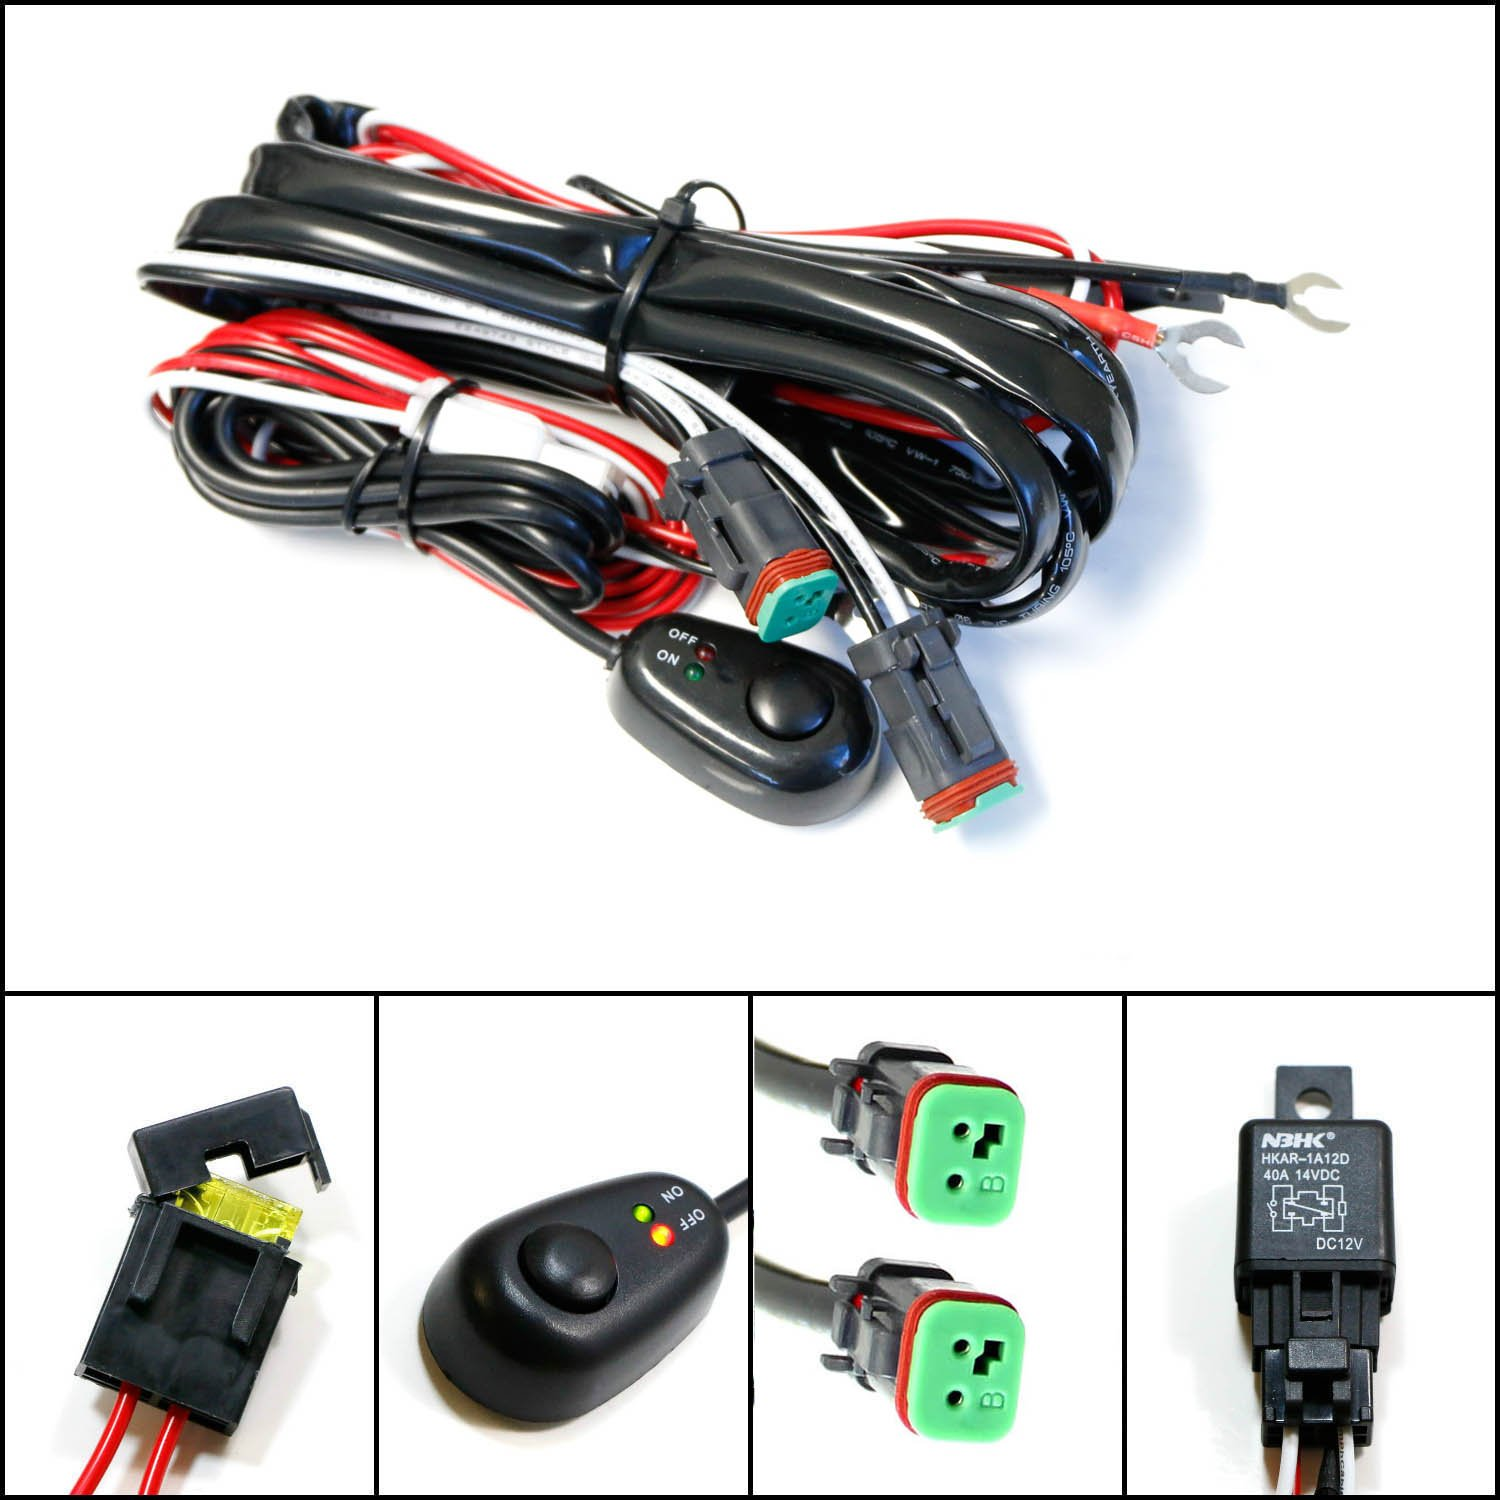 Ijdmtoy 1 Deutsch Dt Dtp Connectors Relay Harness Wire Chevrolet Colorado Fog Light Wiring Diagram Kit With Led On Off Switch For Road Pod Lights Worklamps